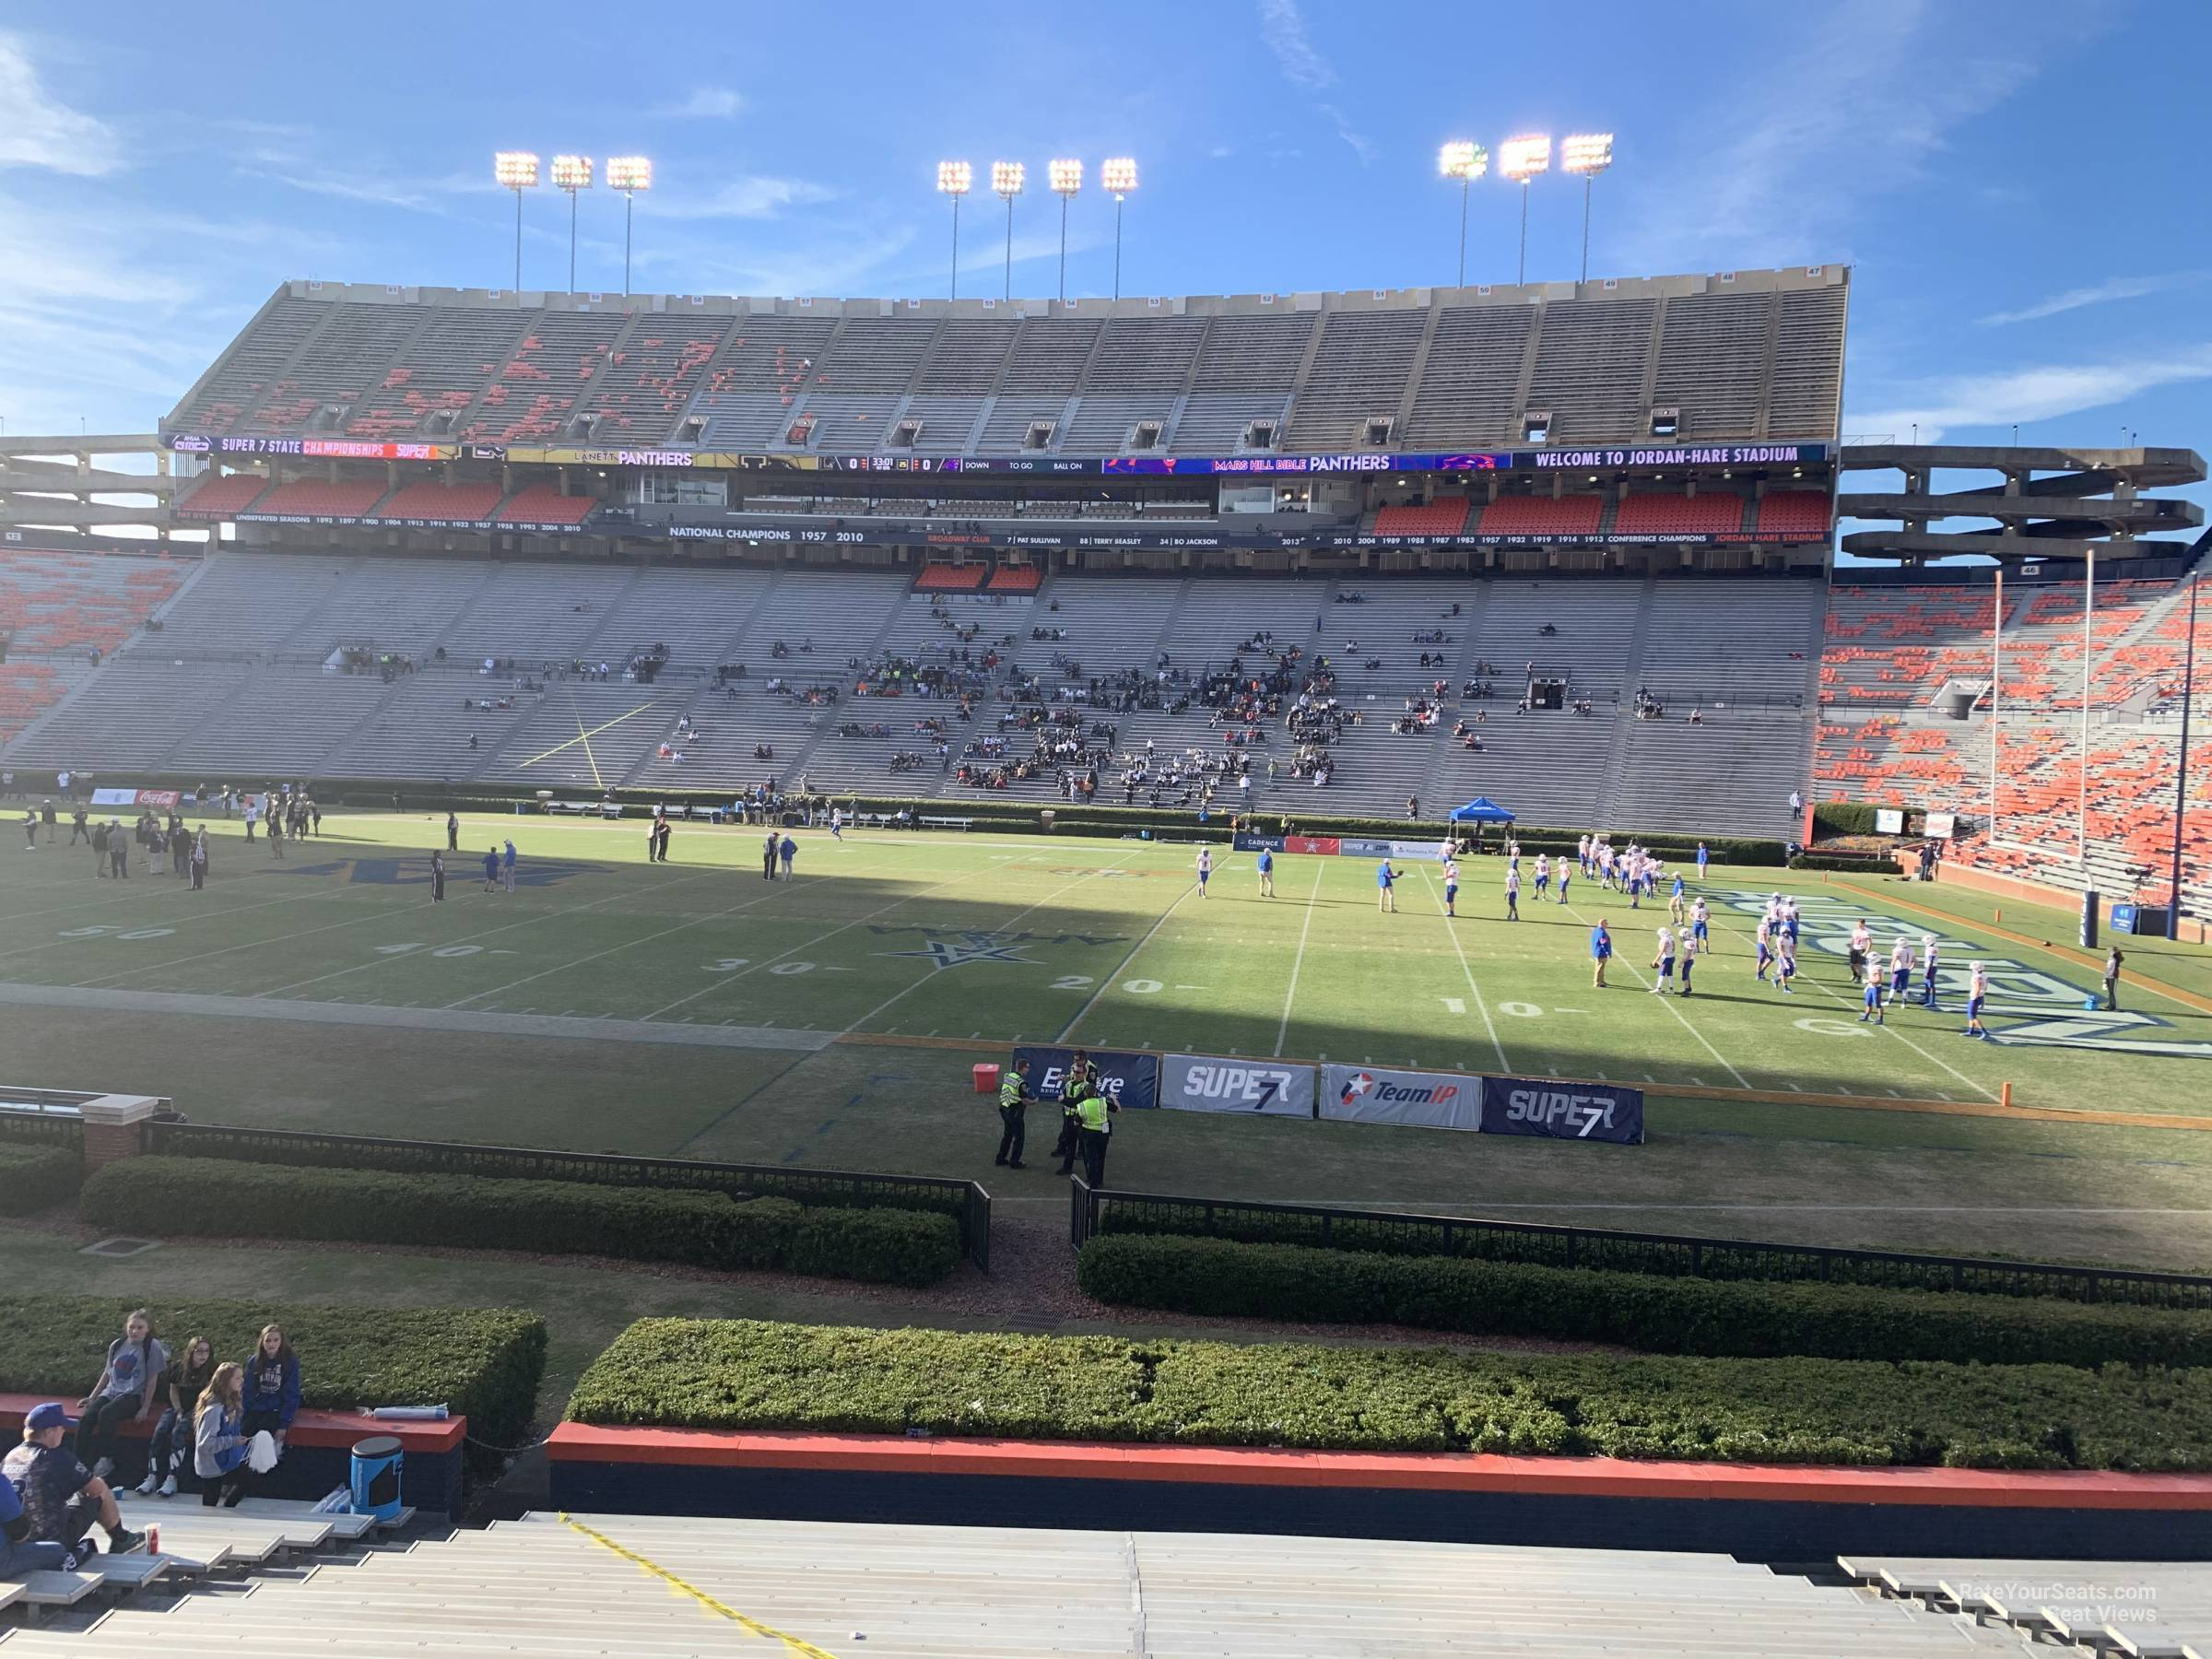 Section 32 seat view